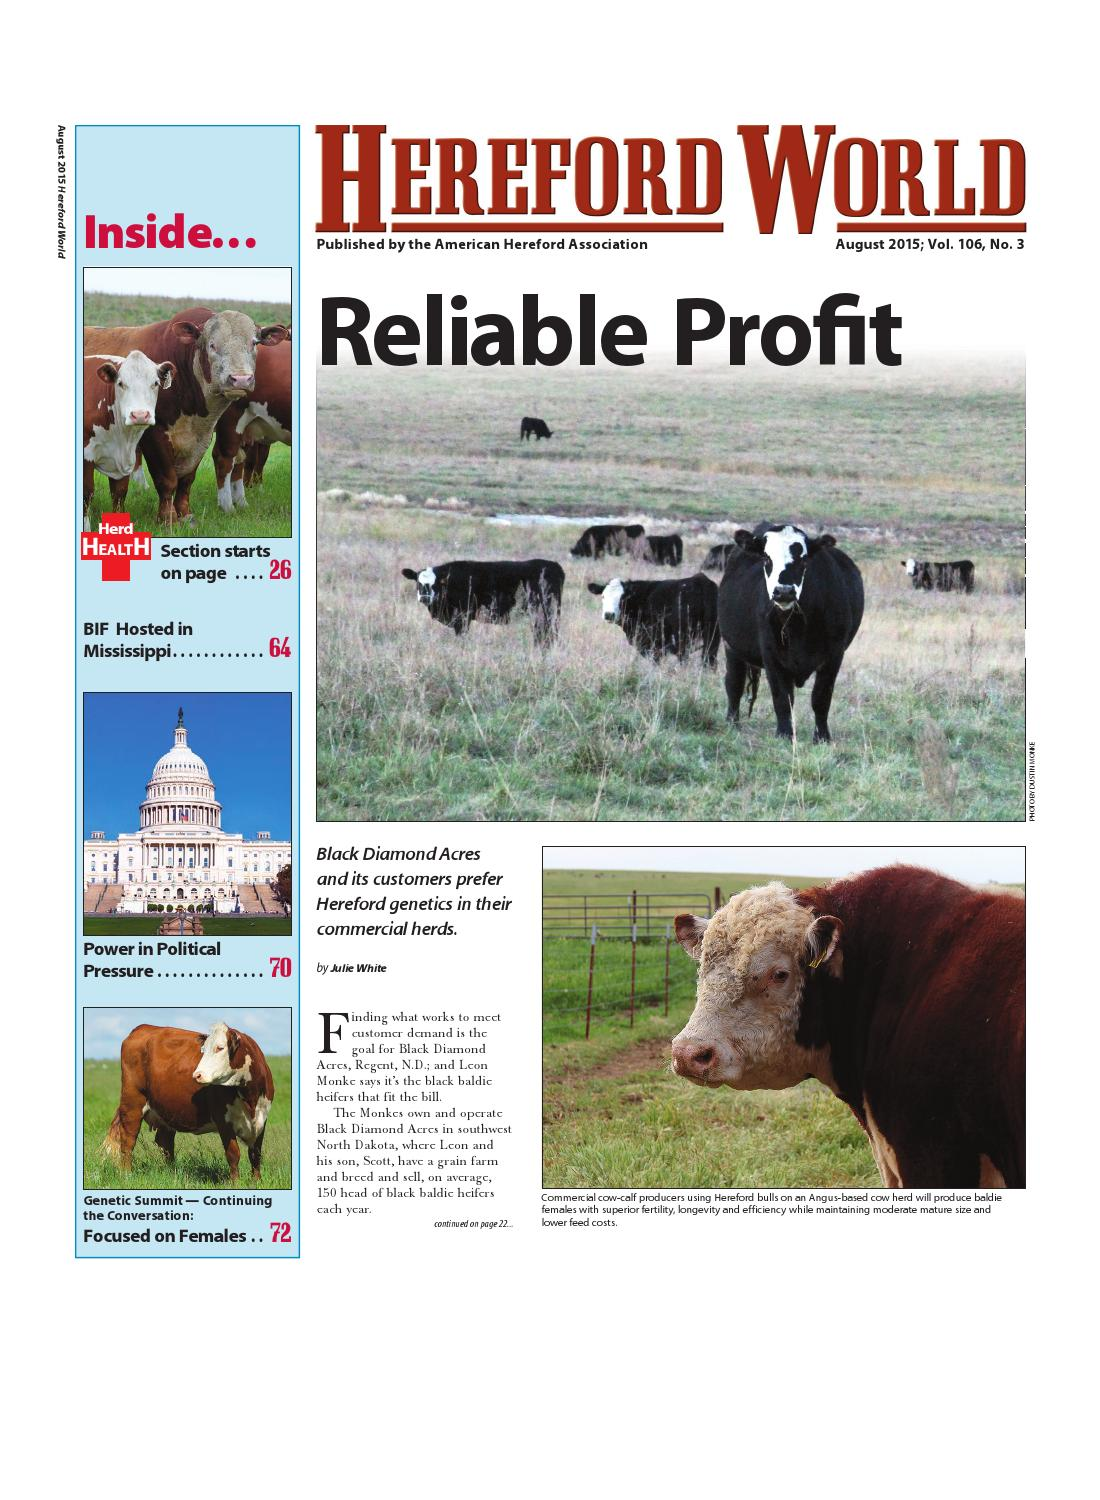 August 2015 Hereford World by American Hereford Association and Hereford  World - issuu b2ea1c06fbae